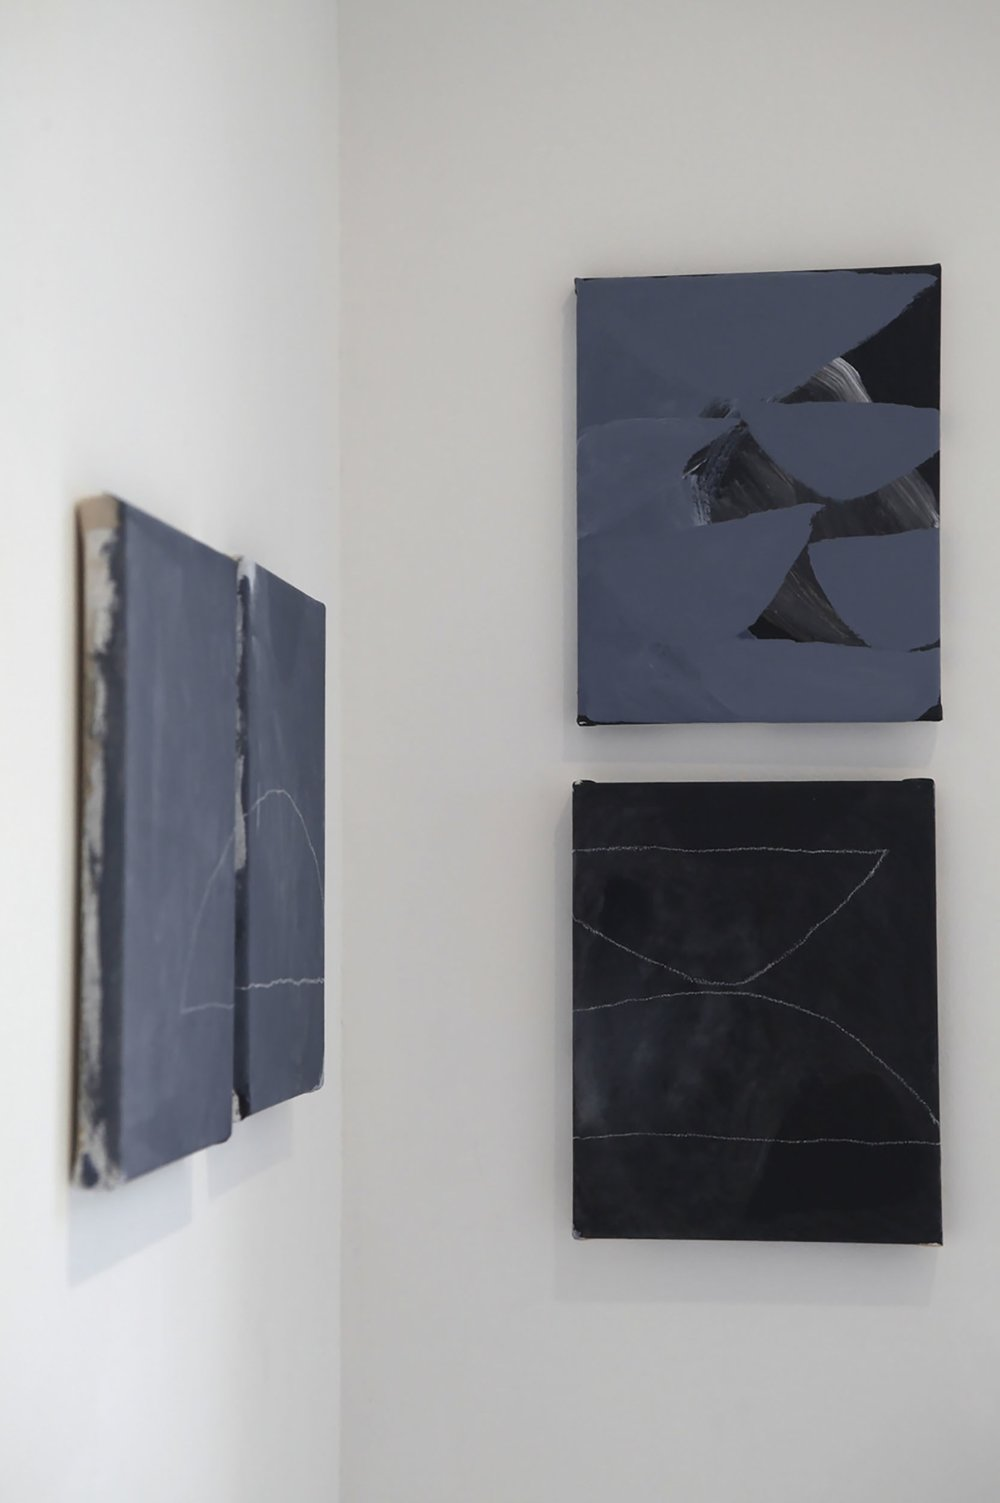 Untitled, 2014 gesso, acrylic and pencil on stretched canvas 30 x 24 cm each (H x W cm)   11.8 x 9.4 inches SOLD